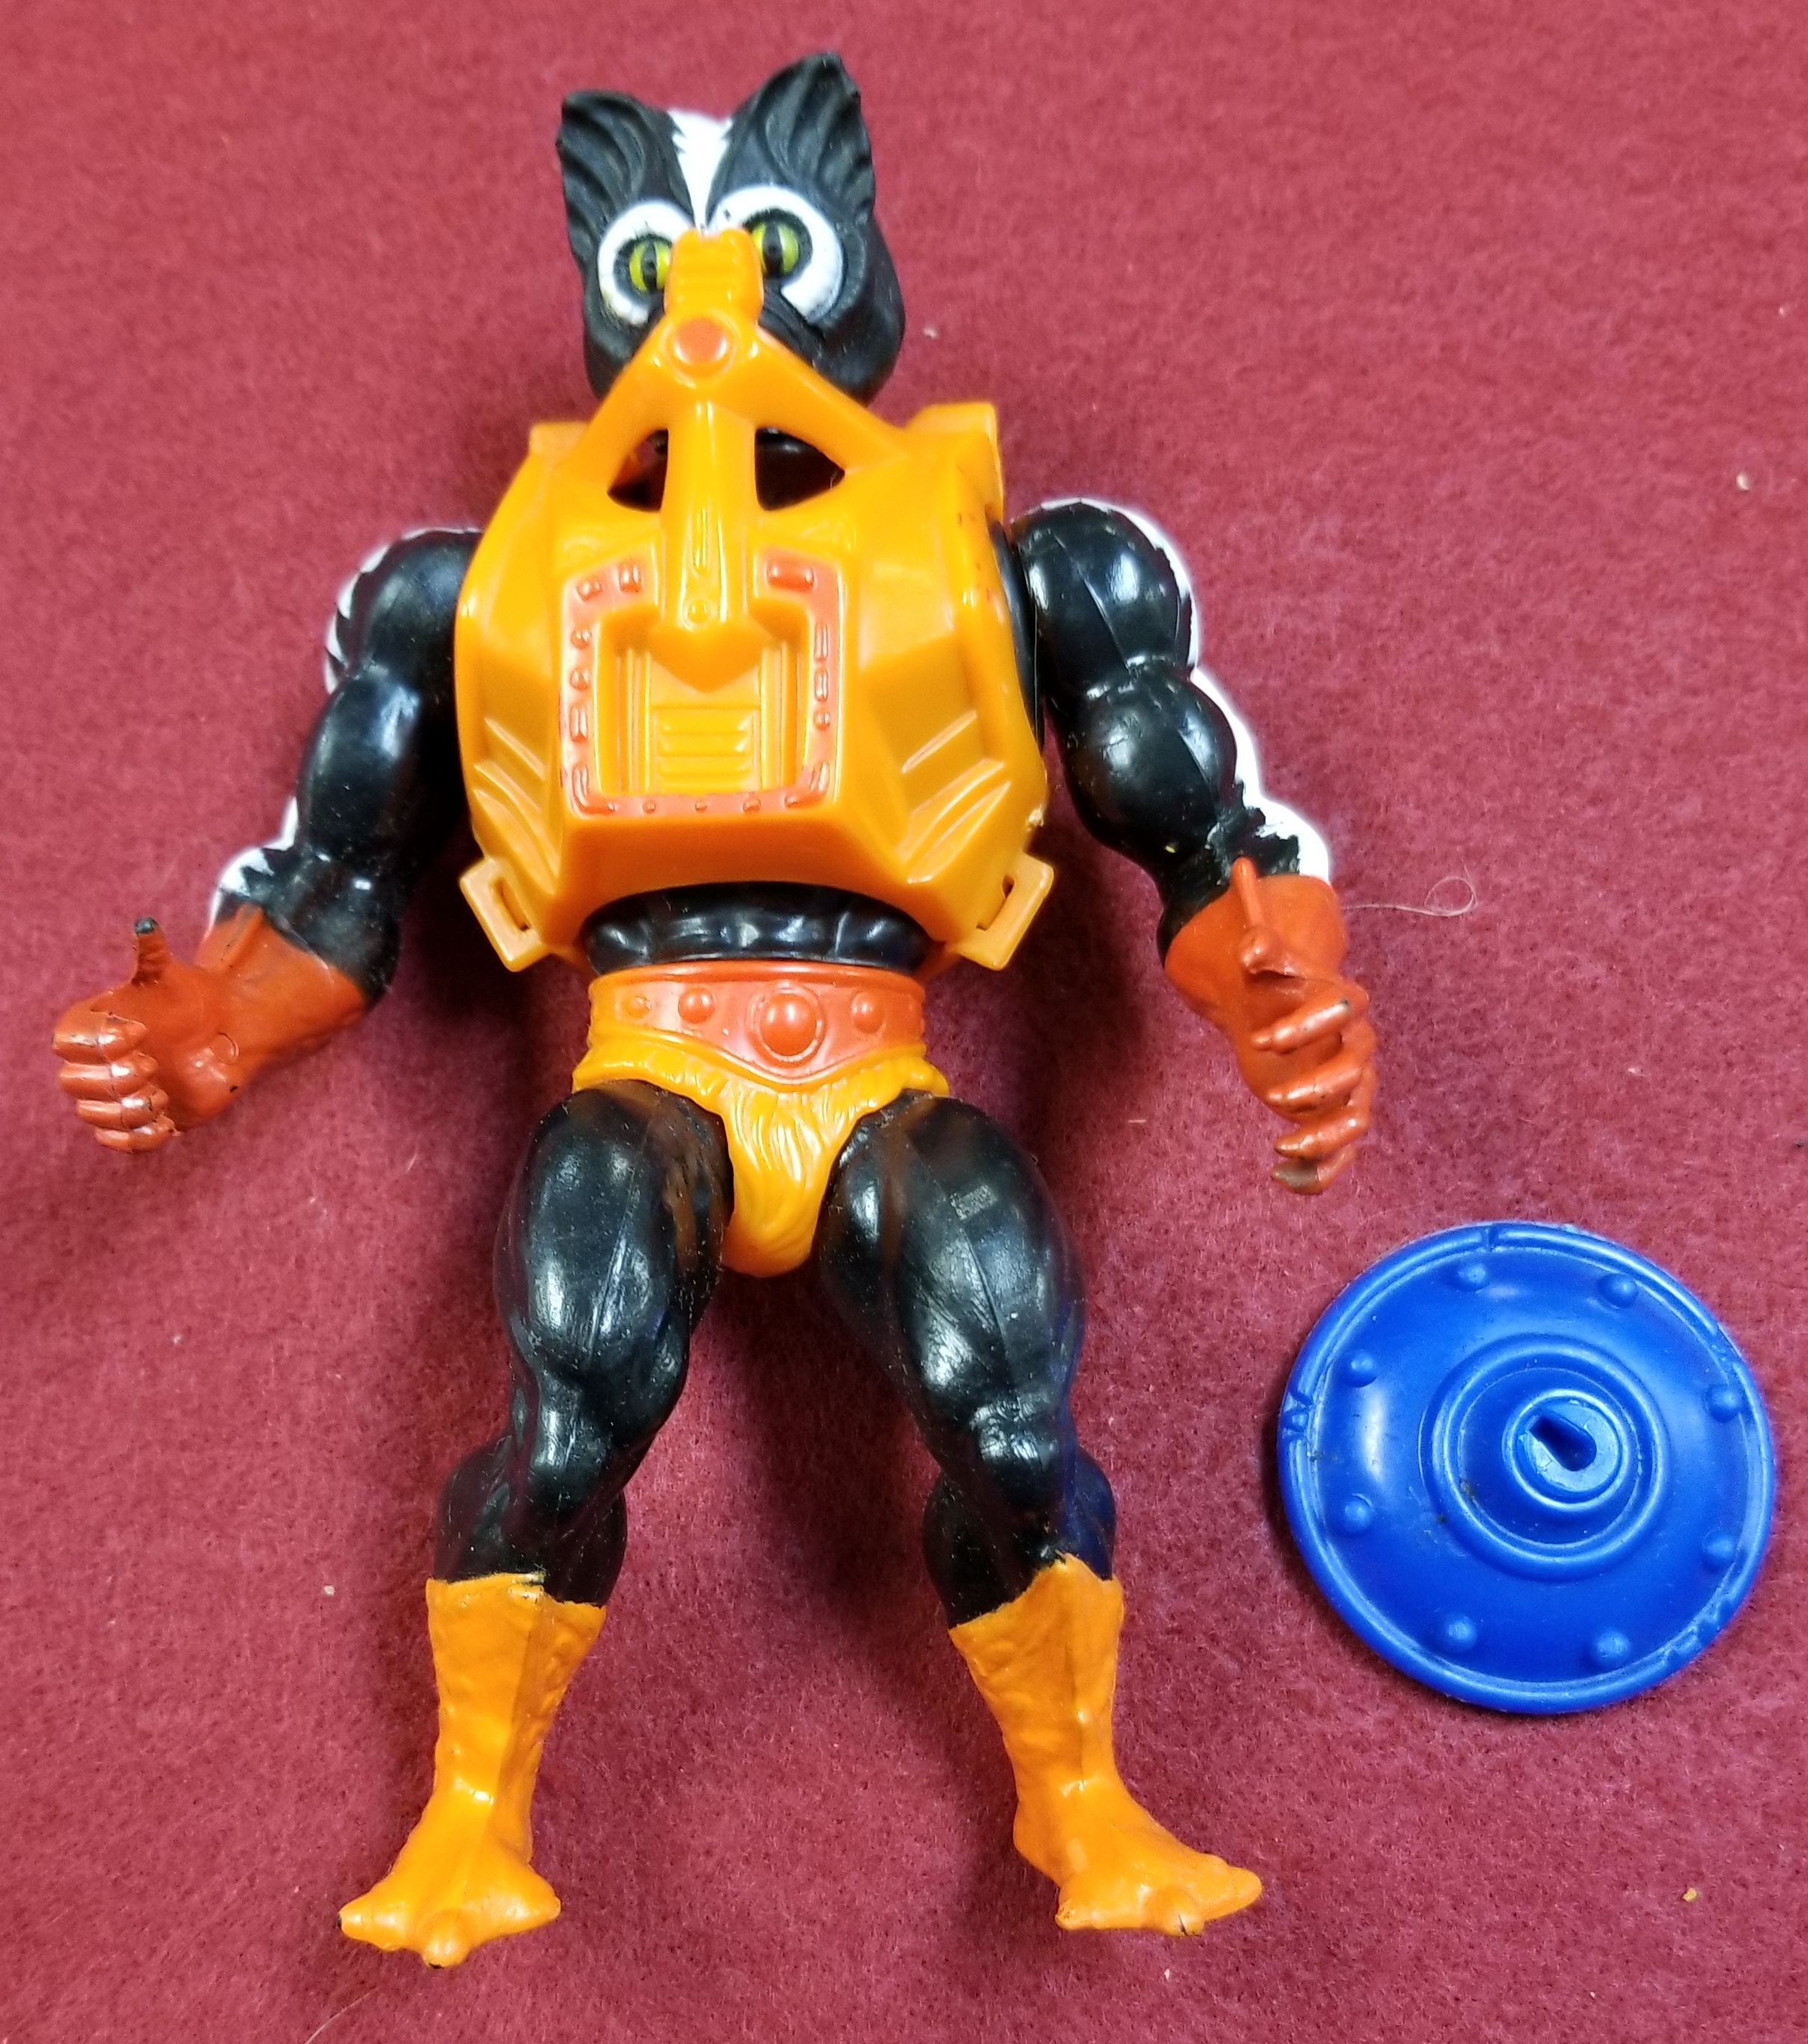 MASTERS OF THE UNIVERSE CLASSIC FIGURES - STINKOR